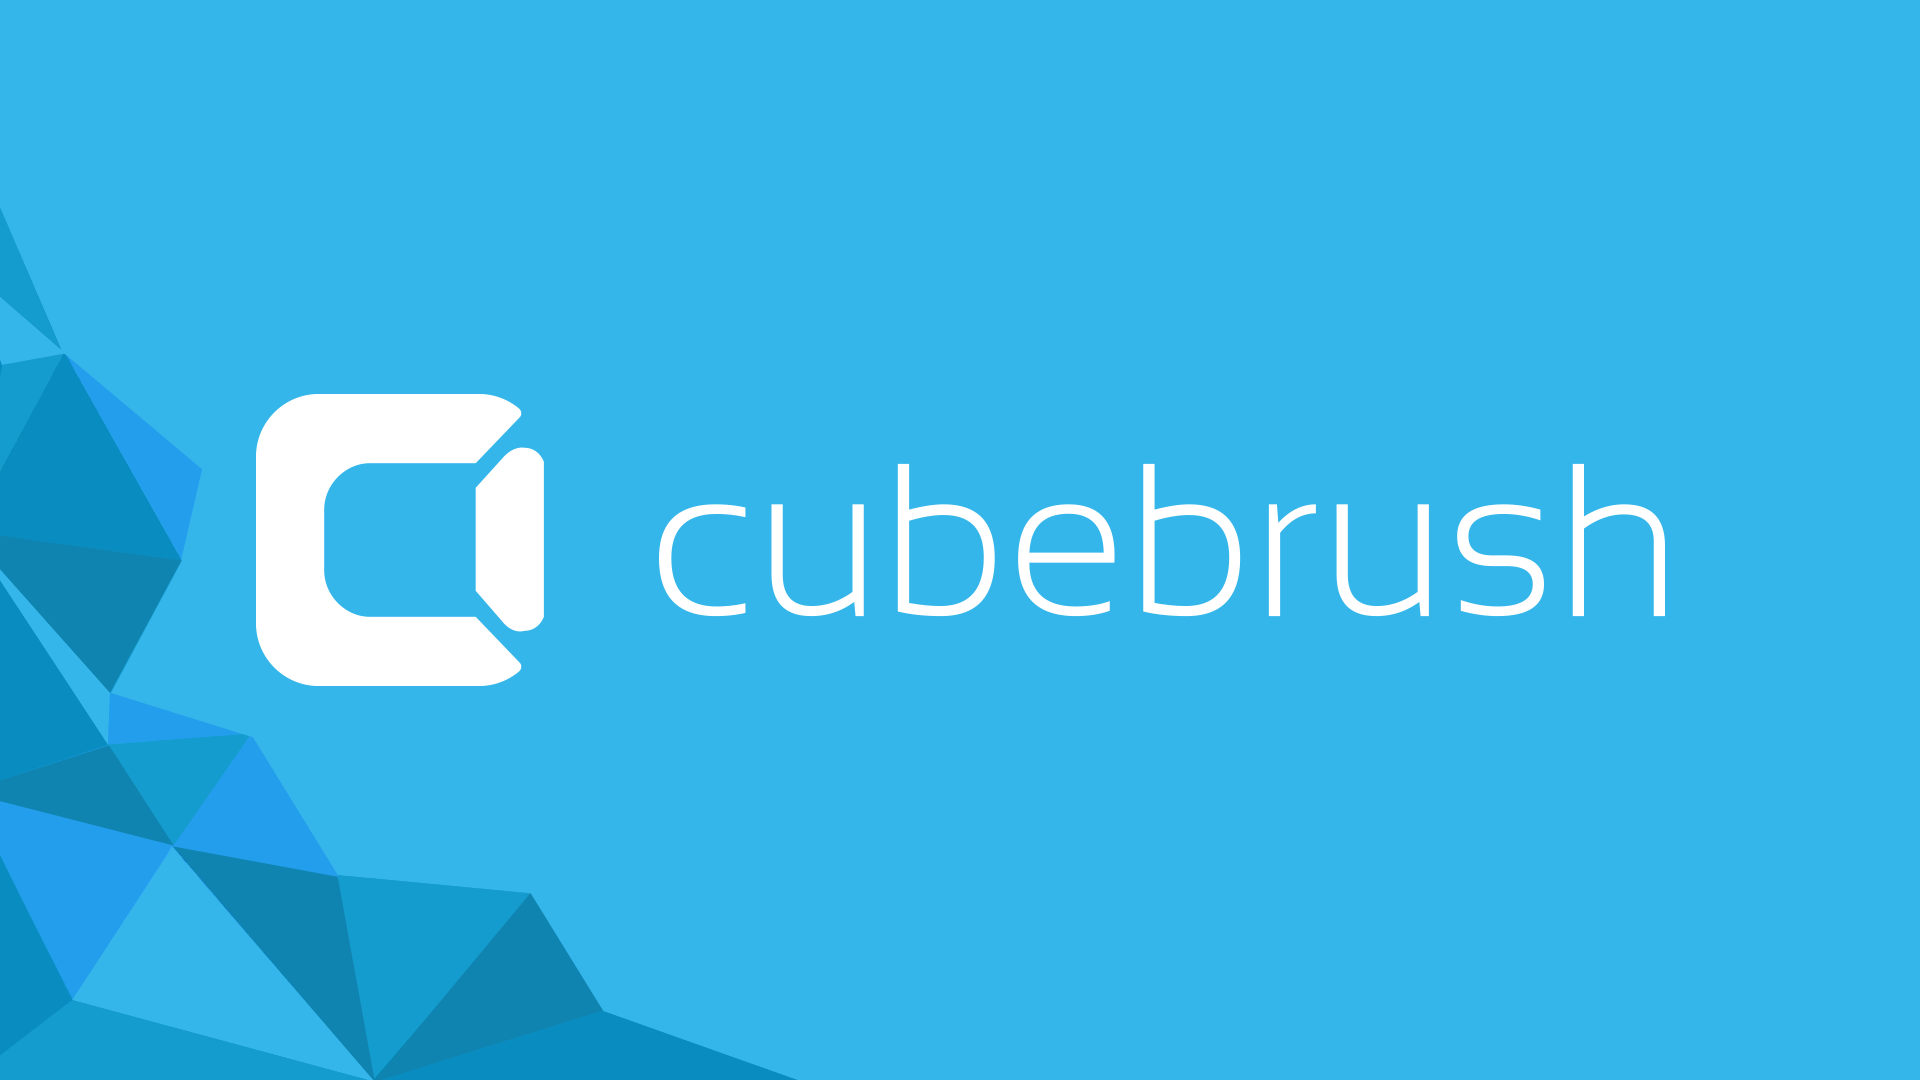 Cubebrush - Curated digital assets & resources